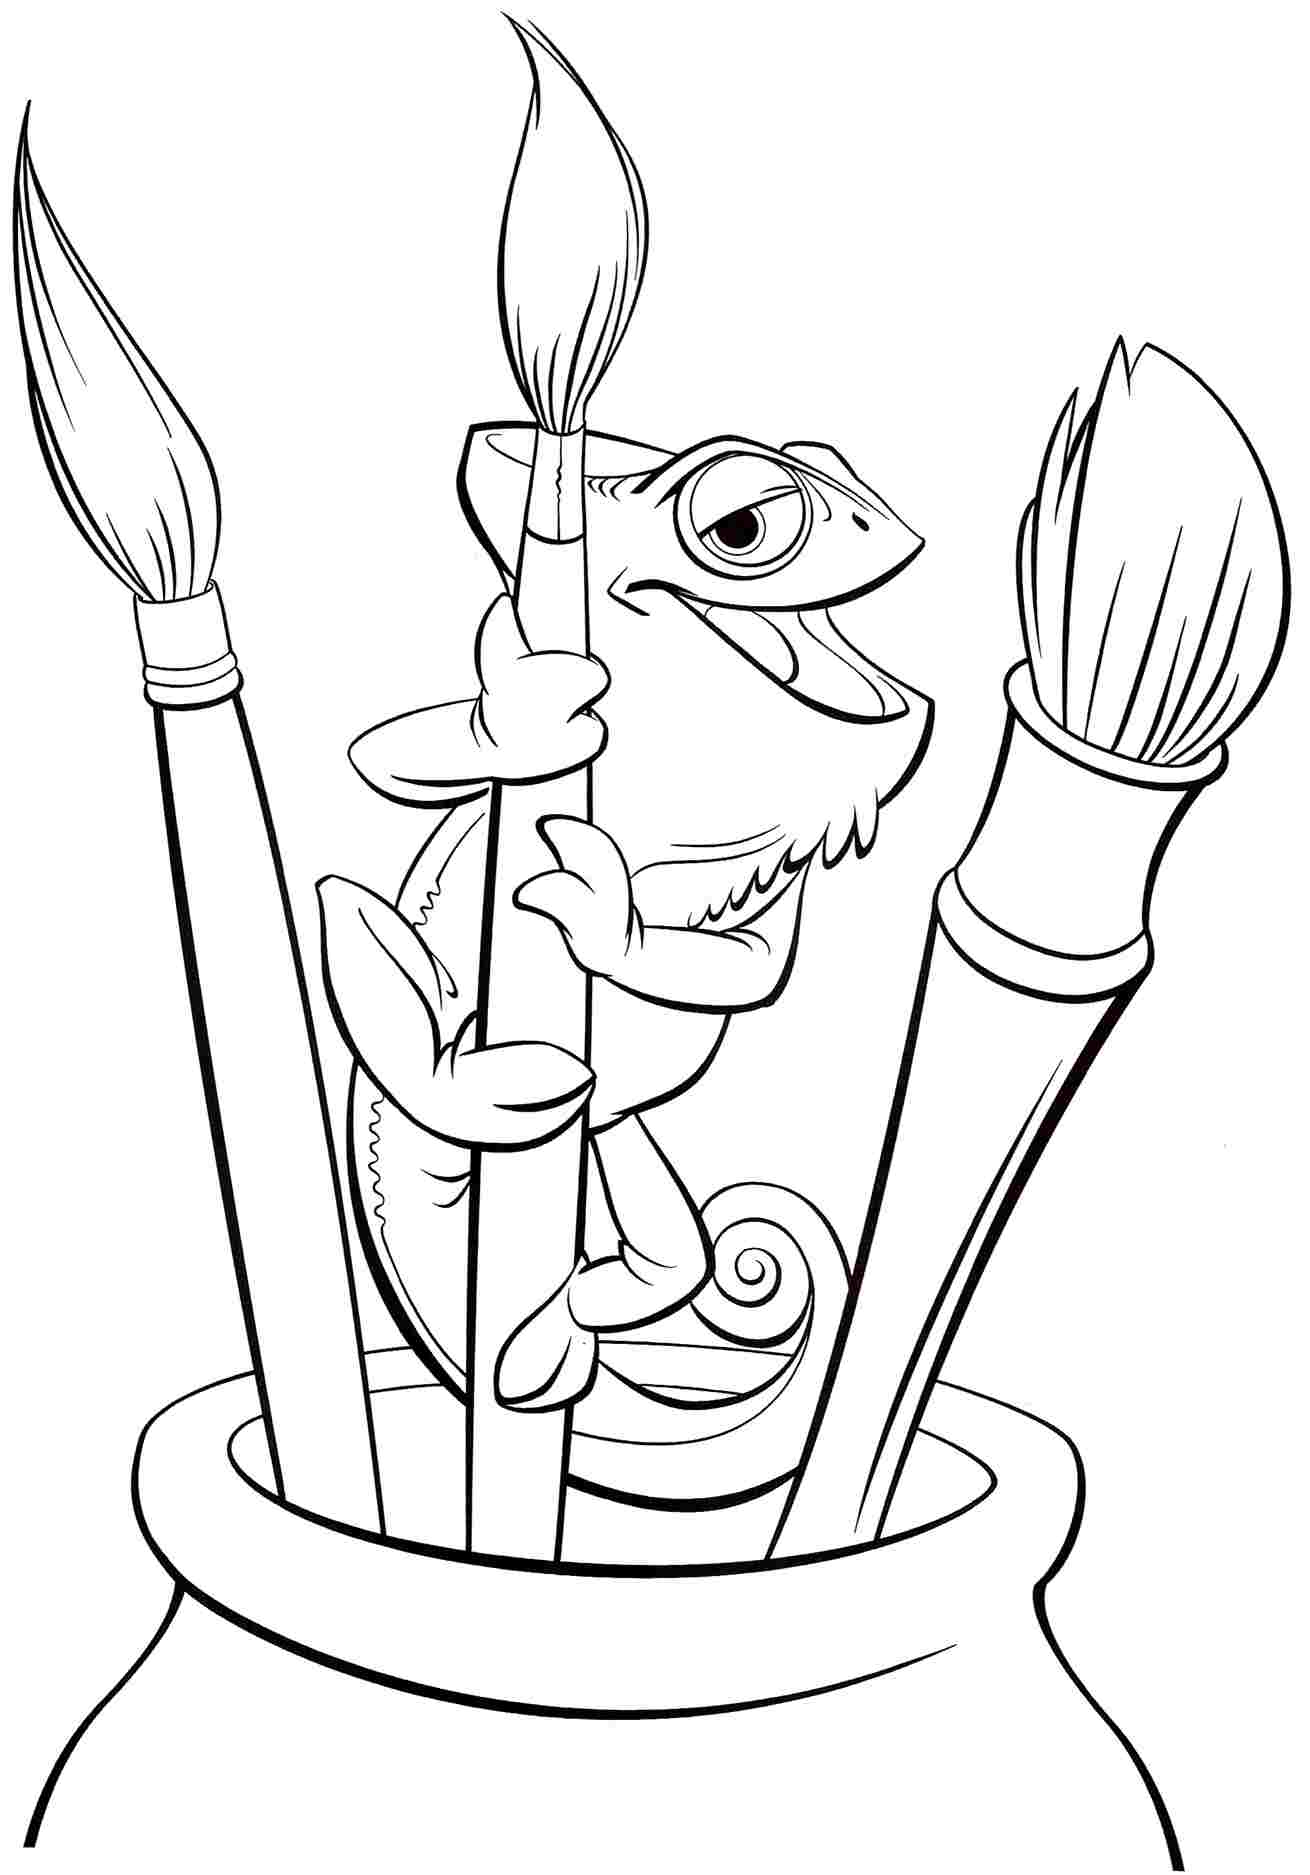 Coloring Pages For Kids Cool2bKids 1310x1875 If You Want To Print The Disney Princess Tangled Rapunzel